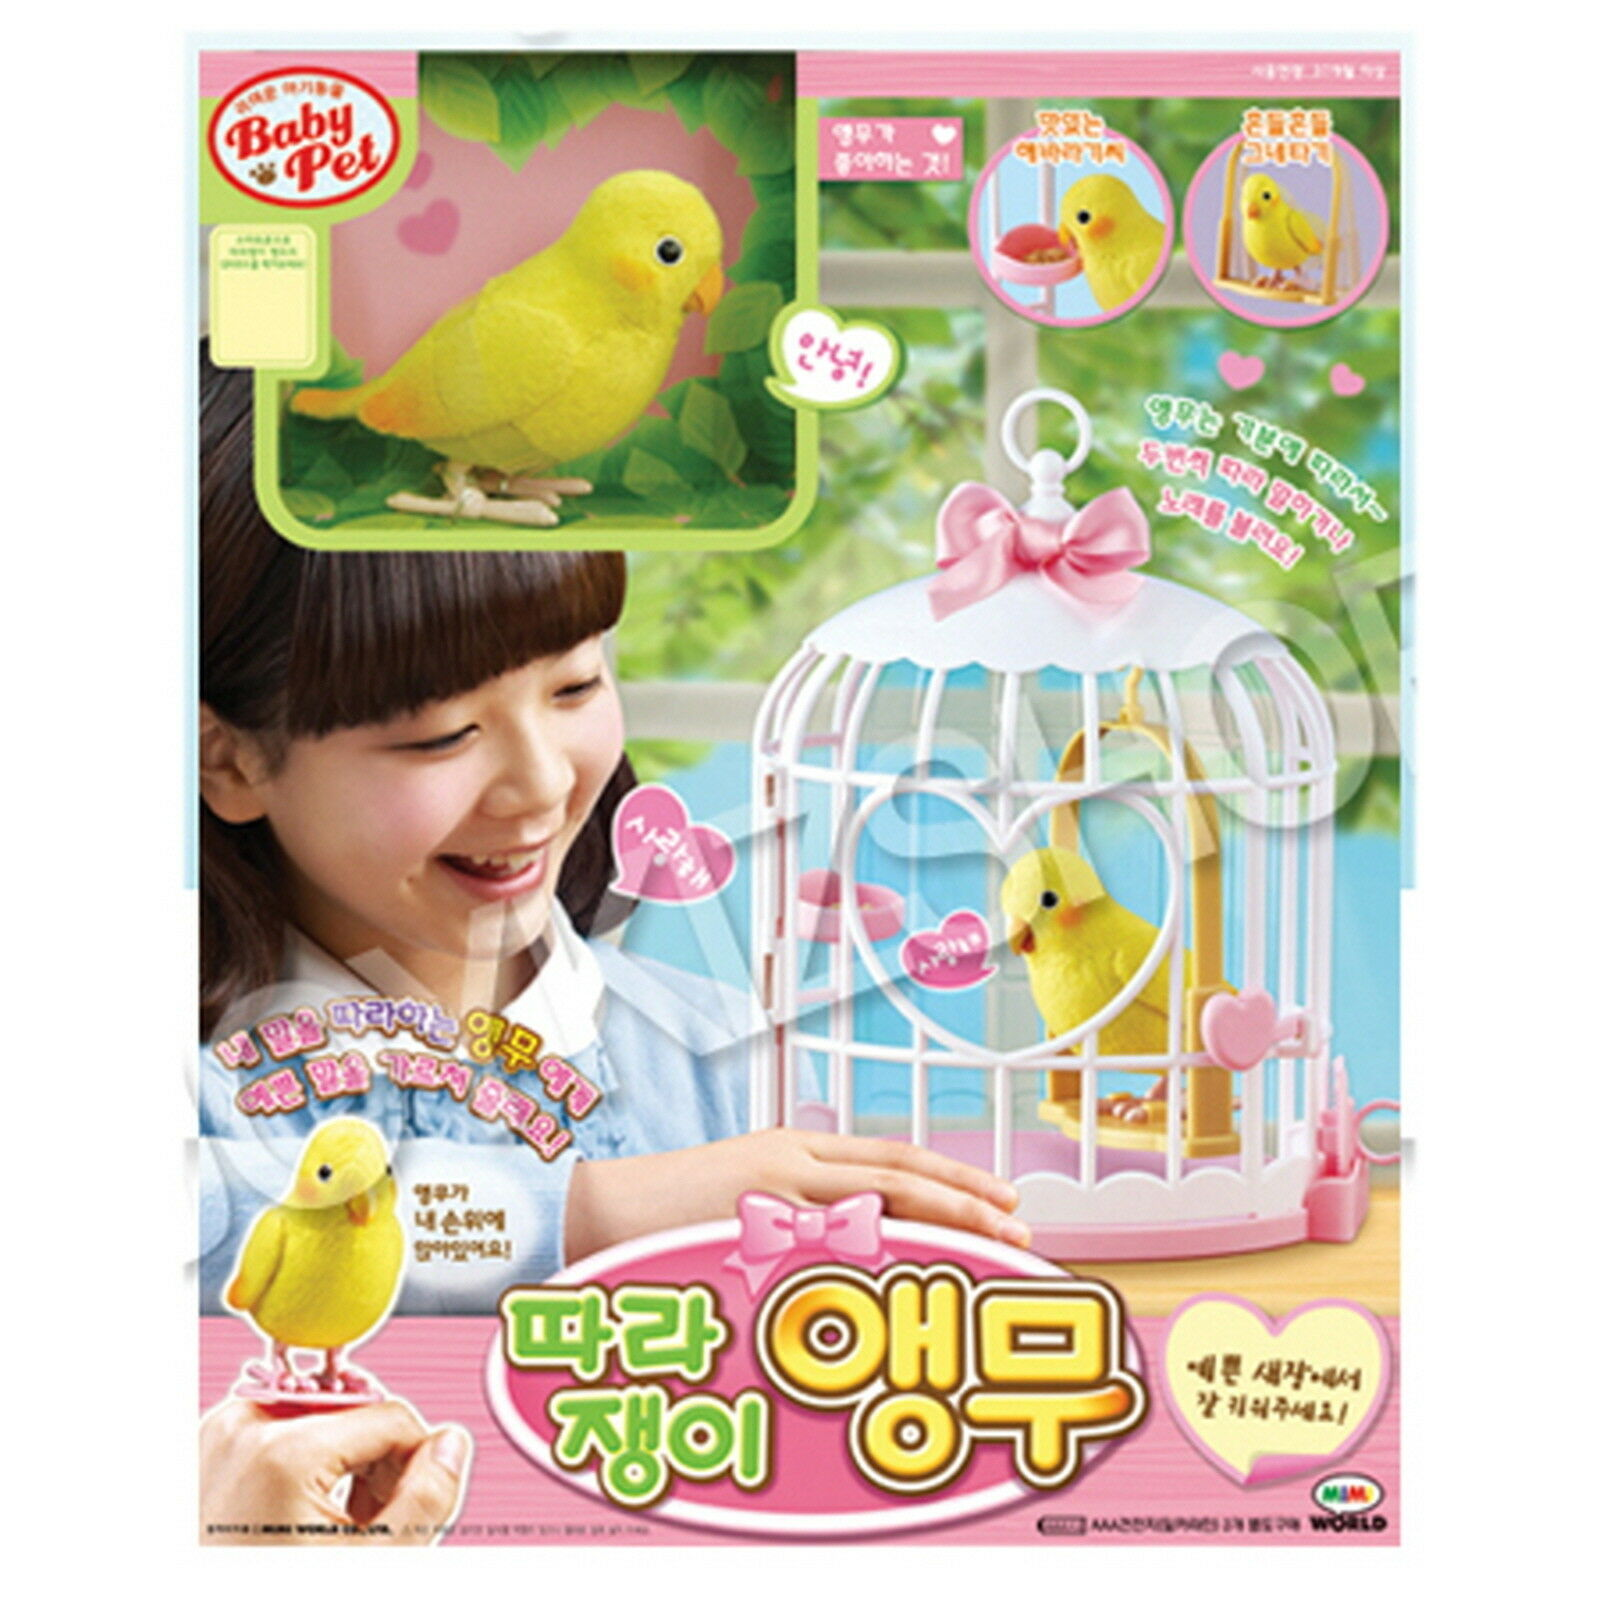 Mimiworld Repeating Parrot baby pet/Talking,singiing bird cage toy role play set